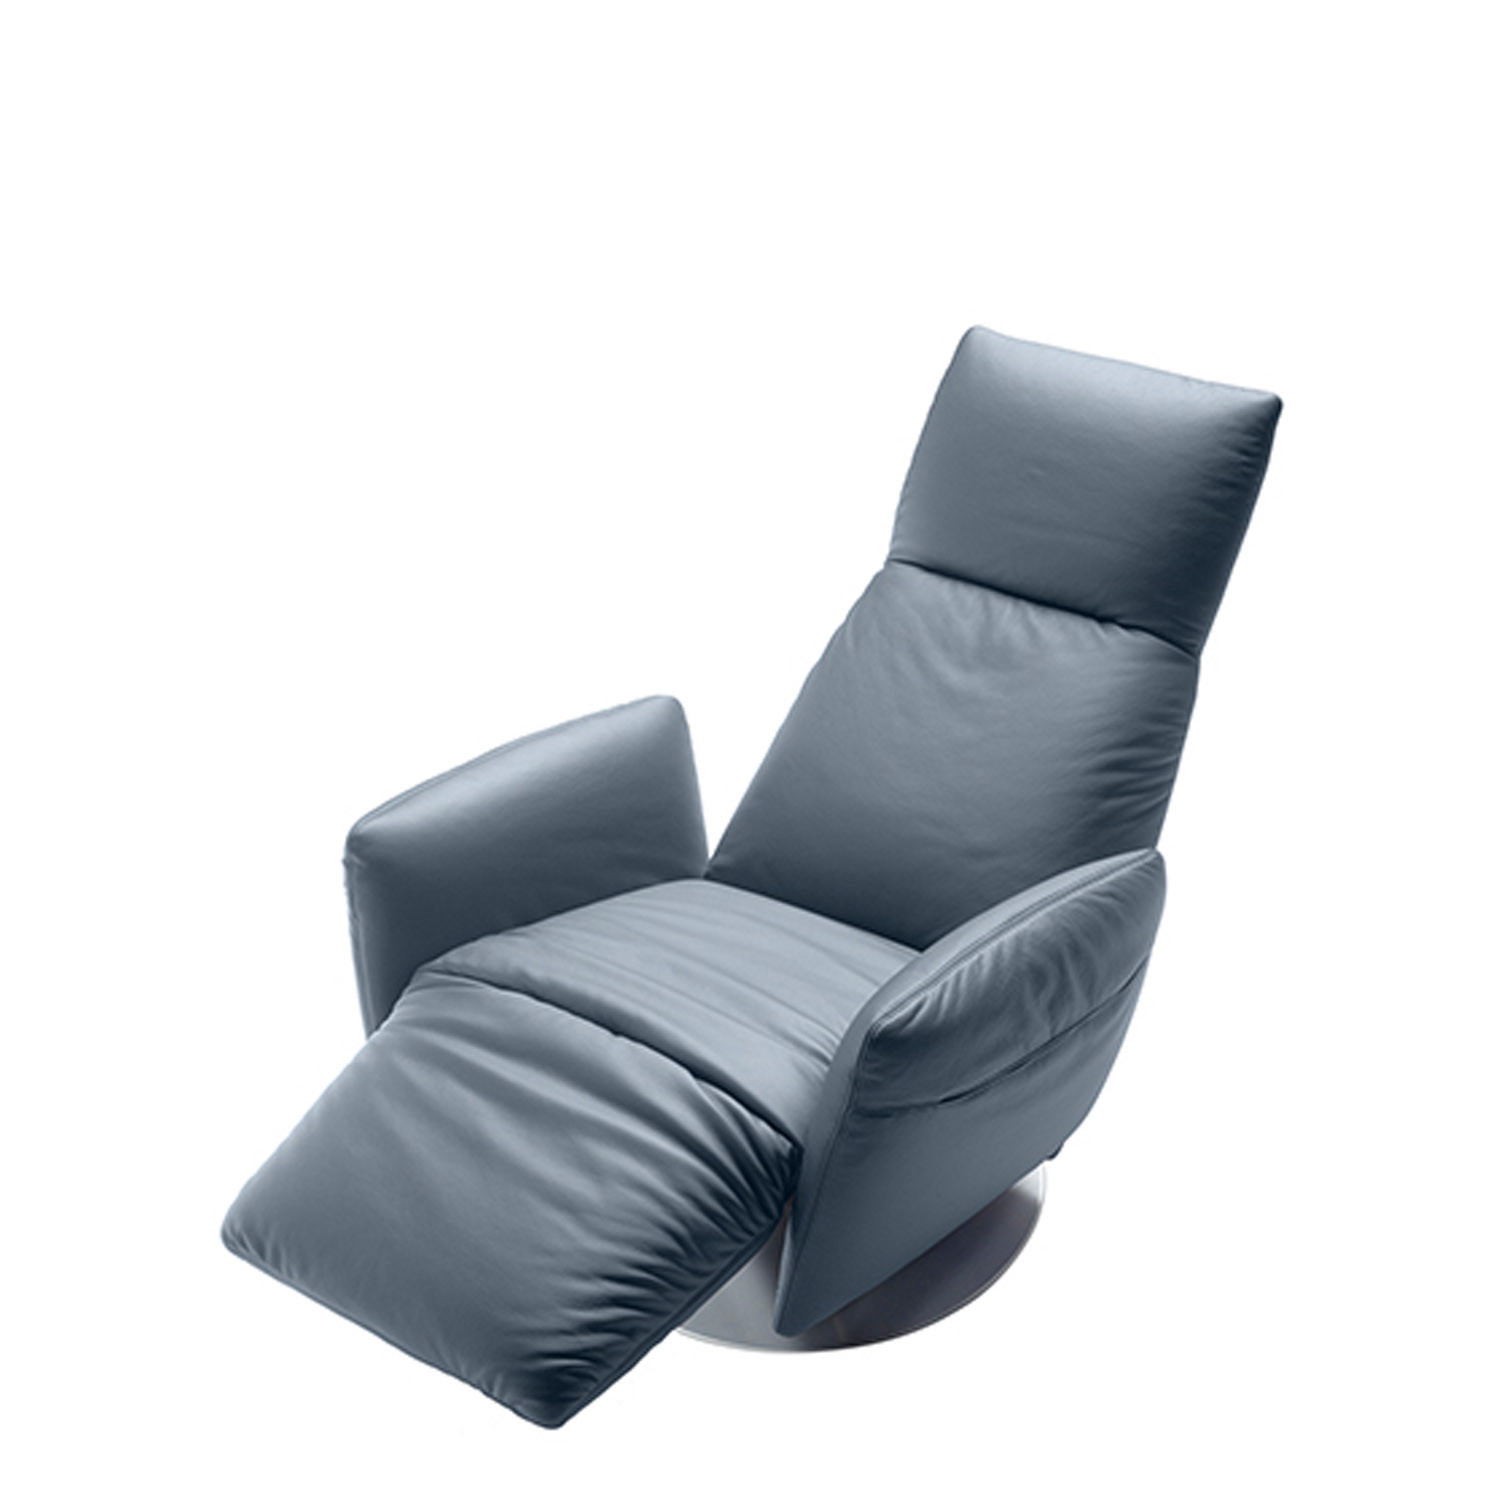 Pillow Recliner Armchair